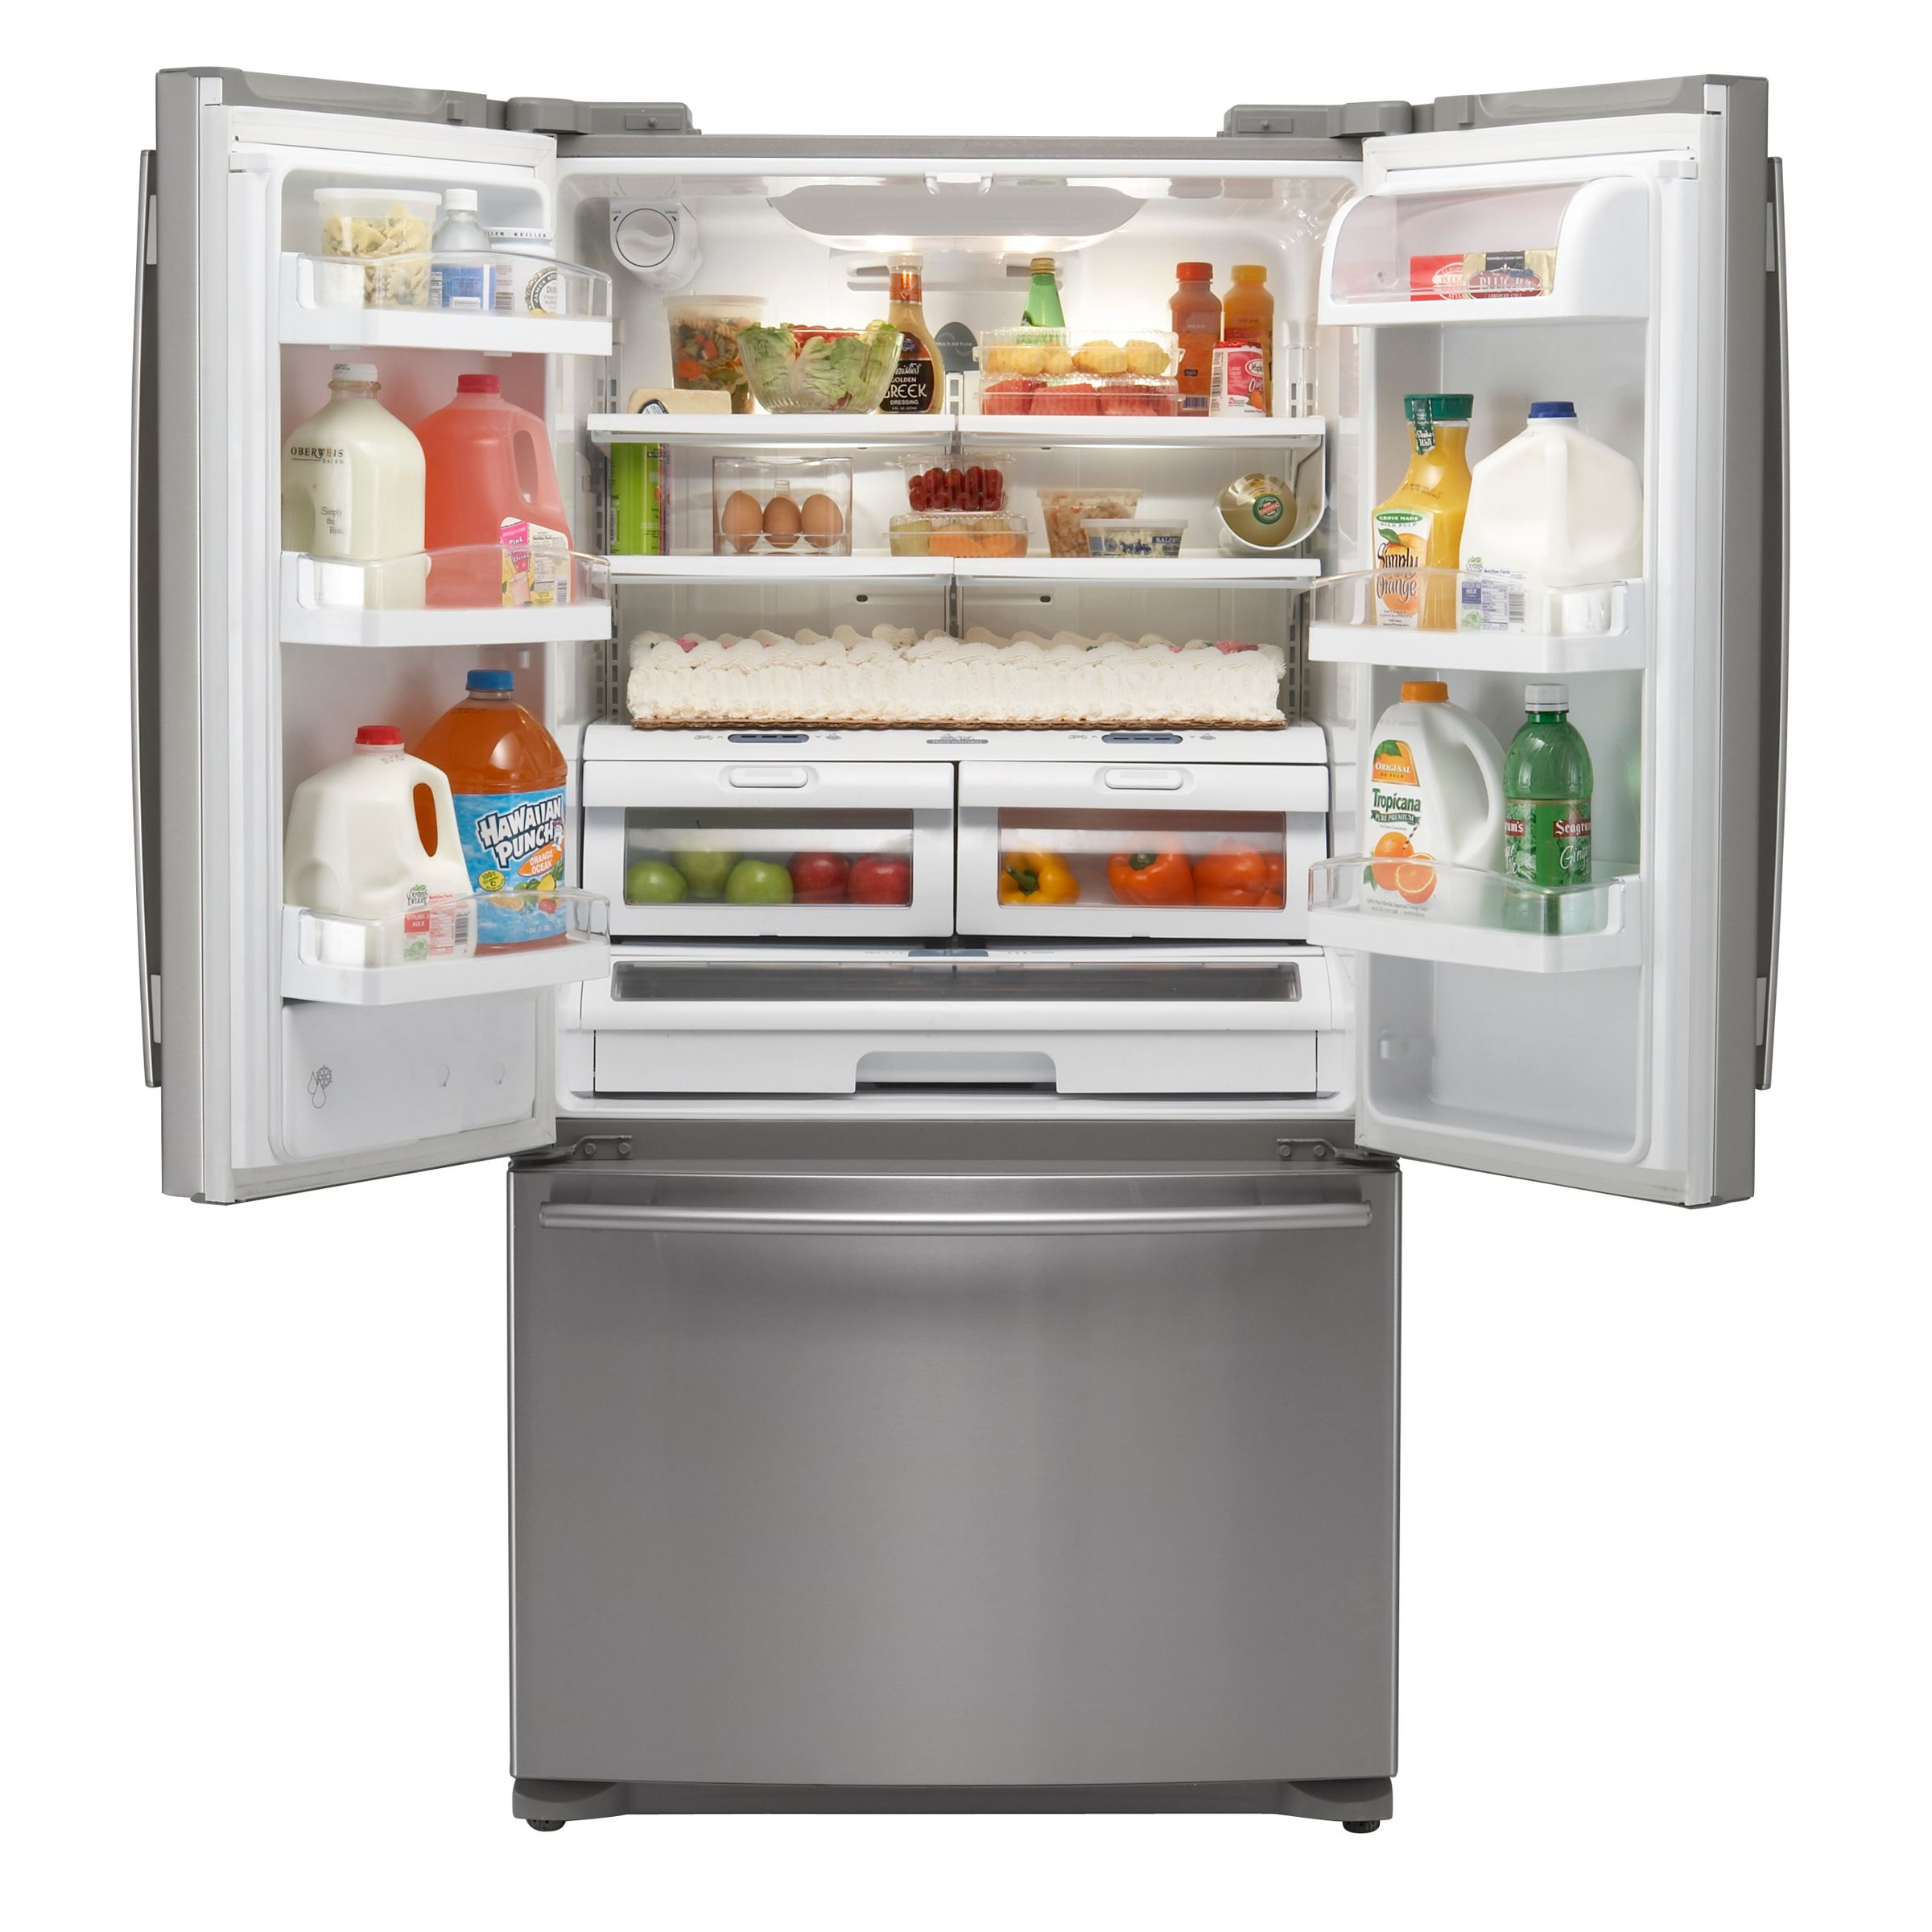 Kenmore Elite 21.0 cu. ft. Bottom Freezer Refrigerator